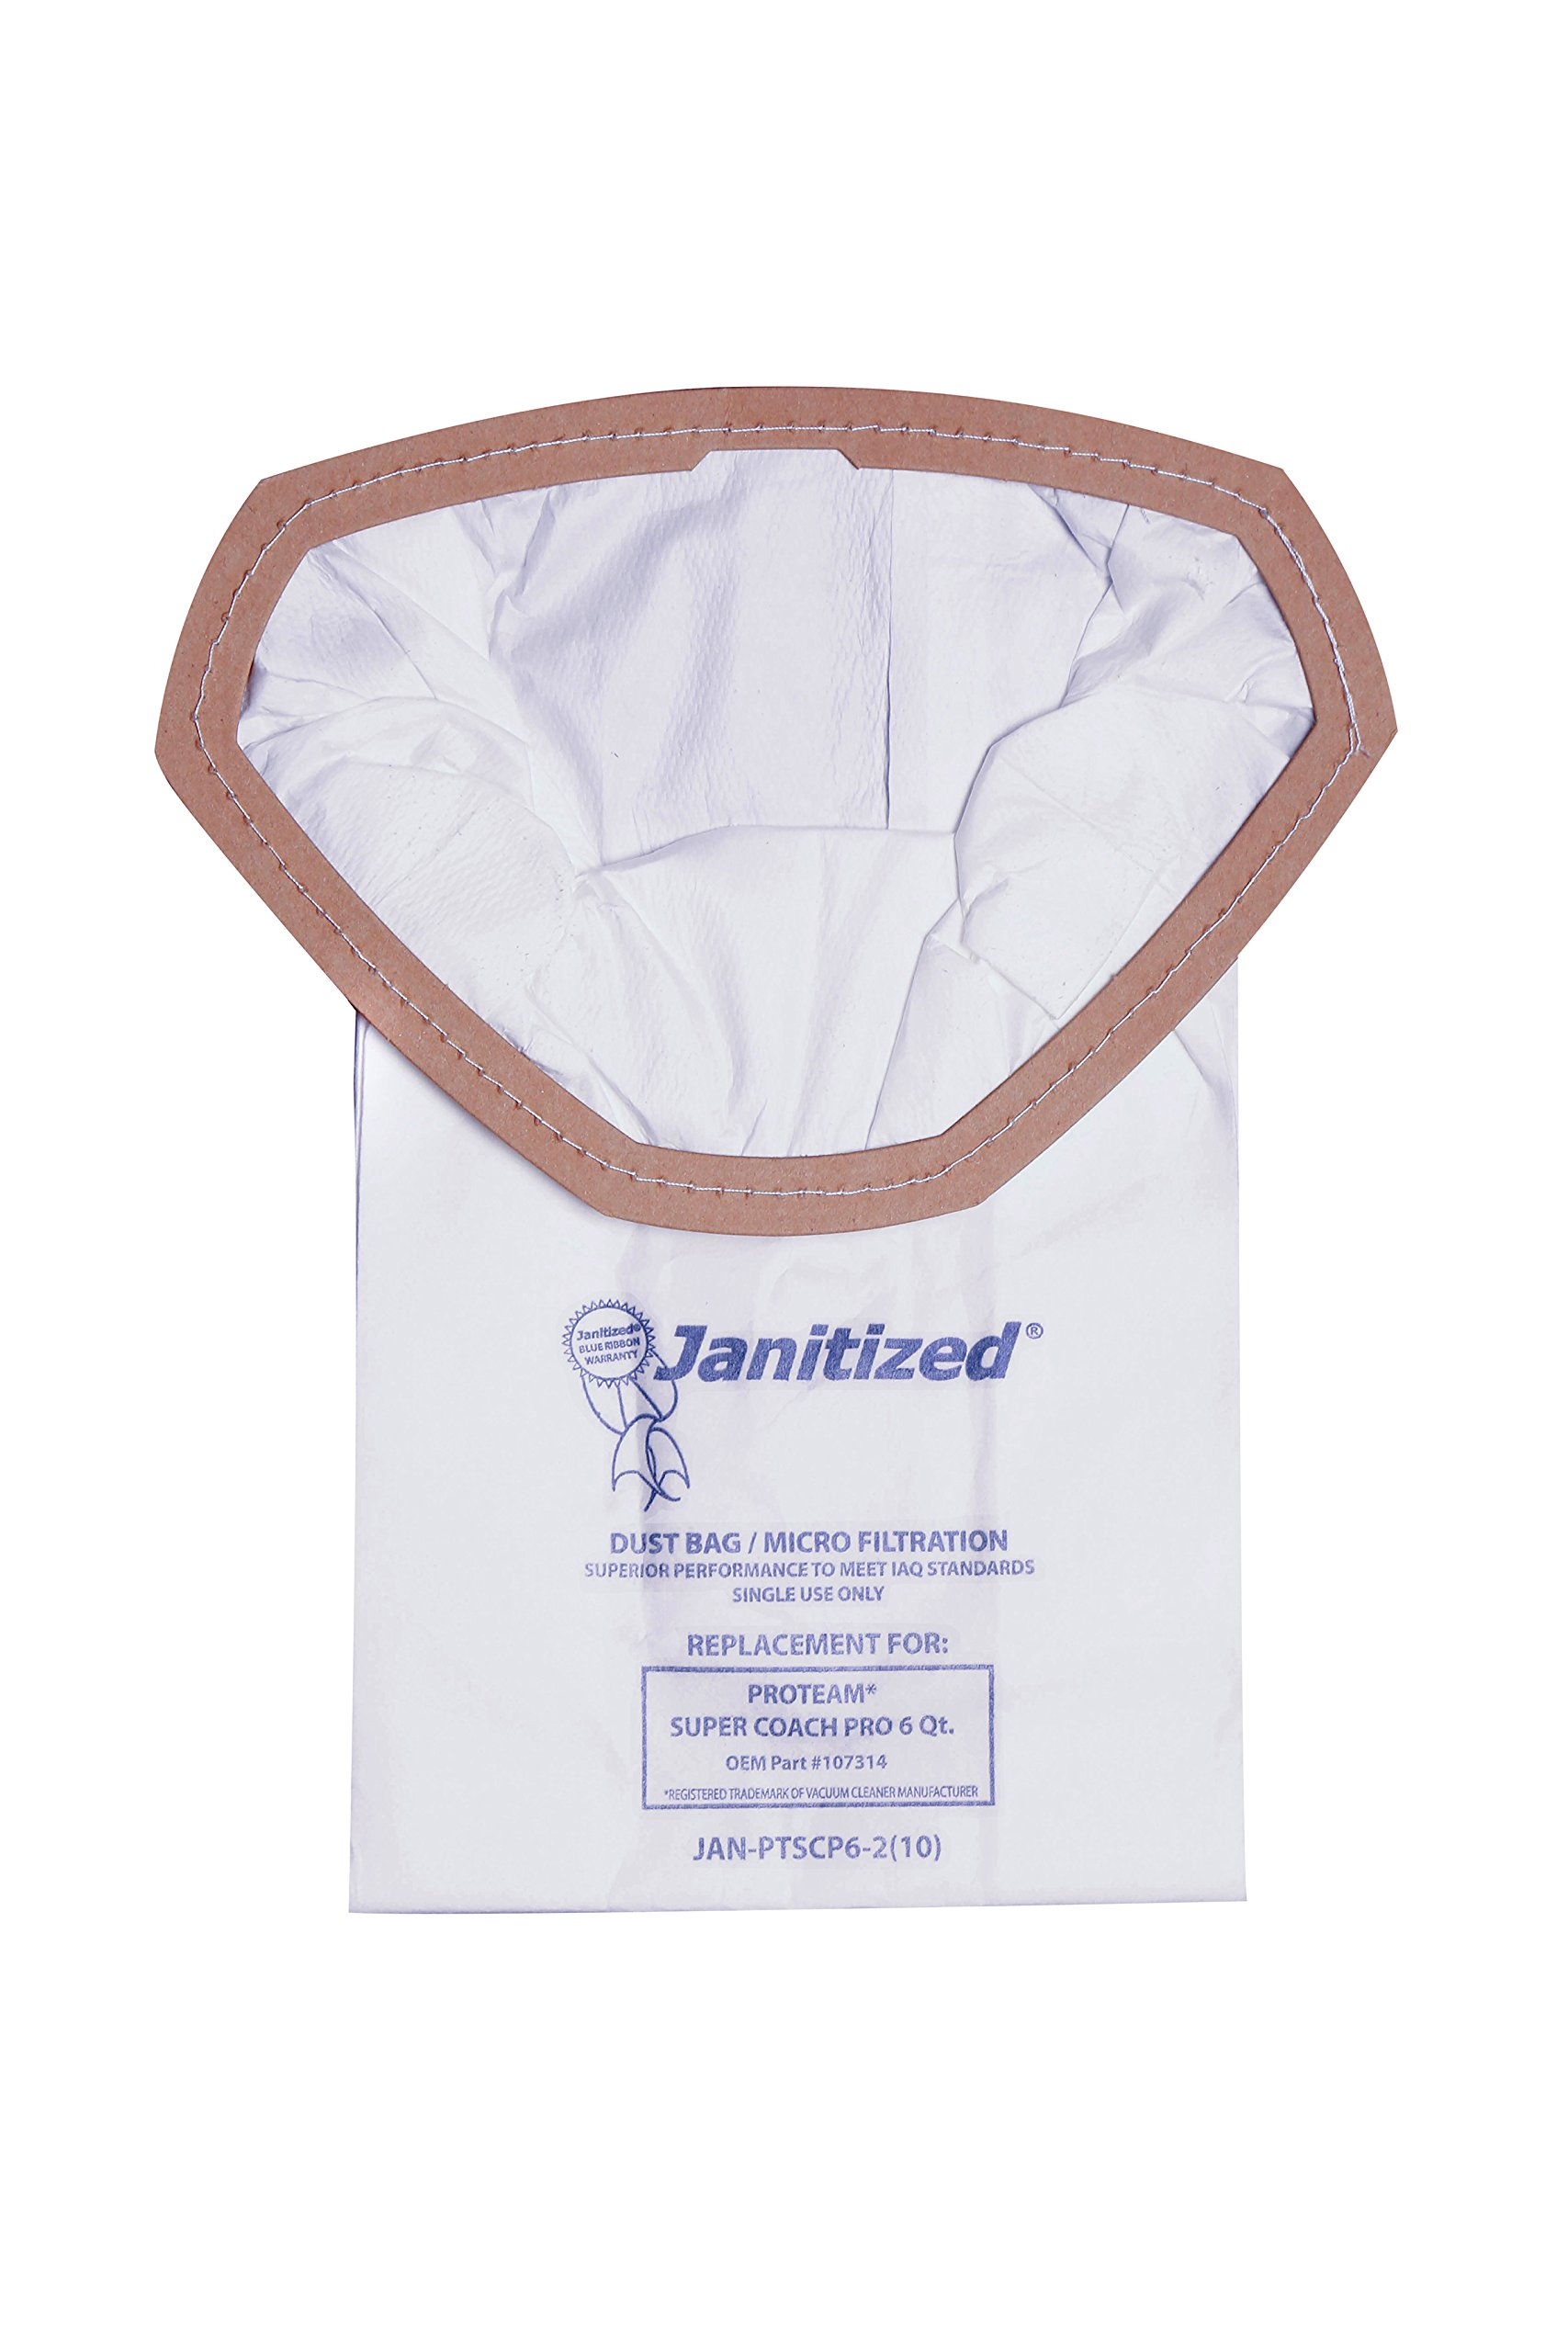 Janitized JAN-PTSCP6-2(10) Premium Replacement Commercial Vacuum Bag for ProTeam Super Coach Pro 6, GoFree Pro & ProVac FS 6 Qt. Vacuums(10 - 10 packs) by Janitized